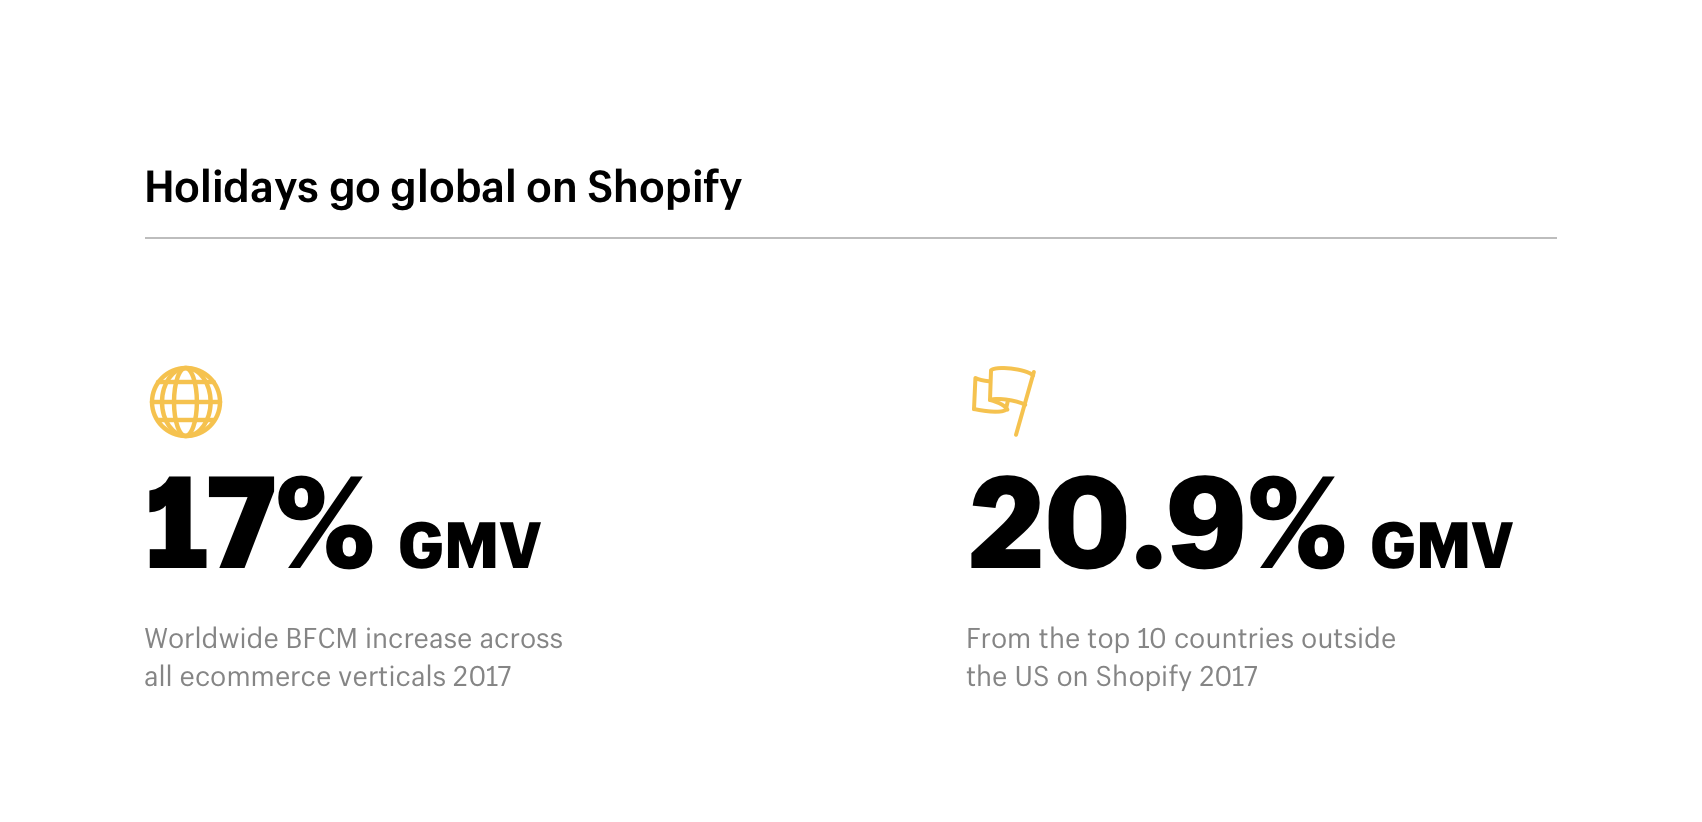 Holidays go global on Shopify